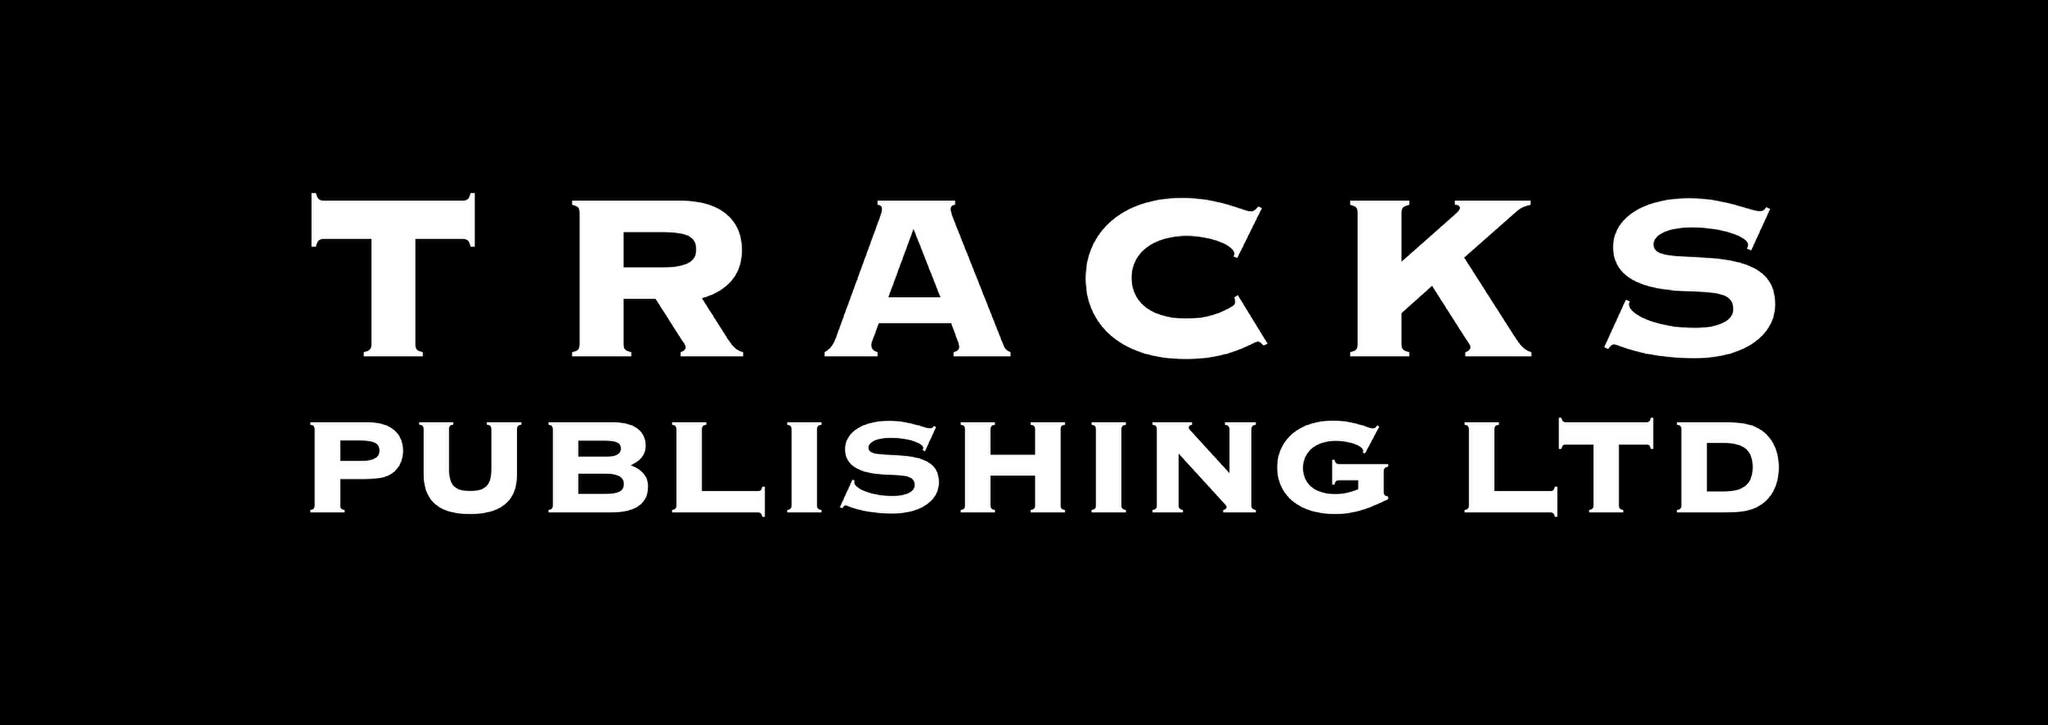 Tracks Publishing Ltd